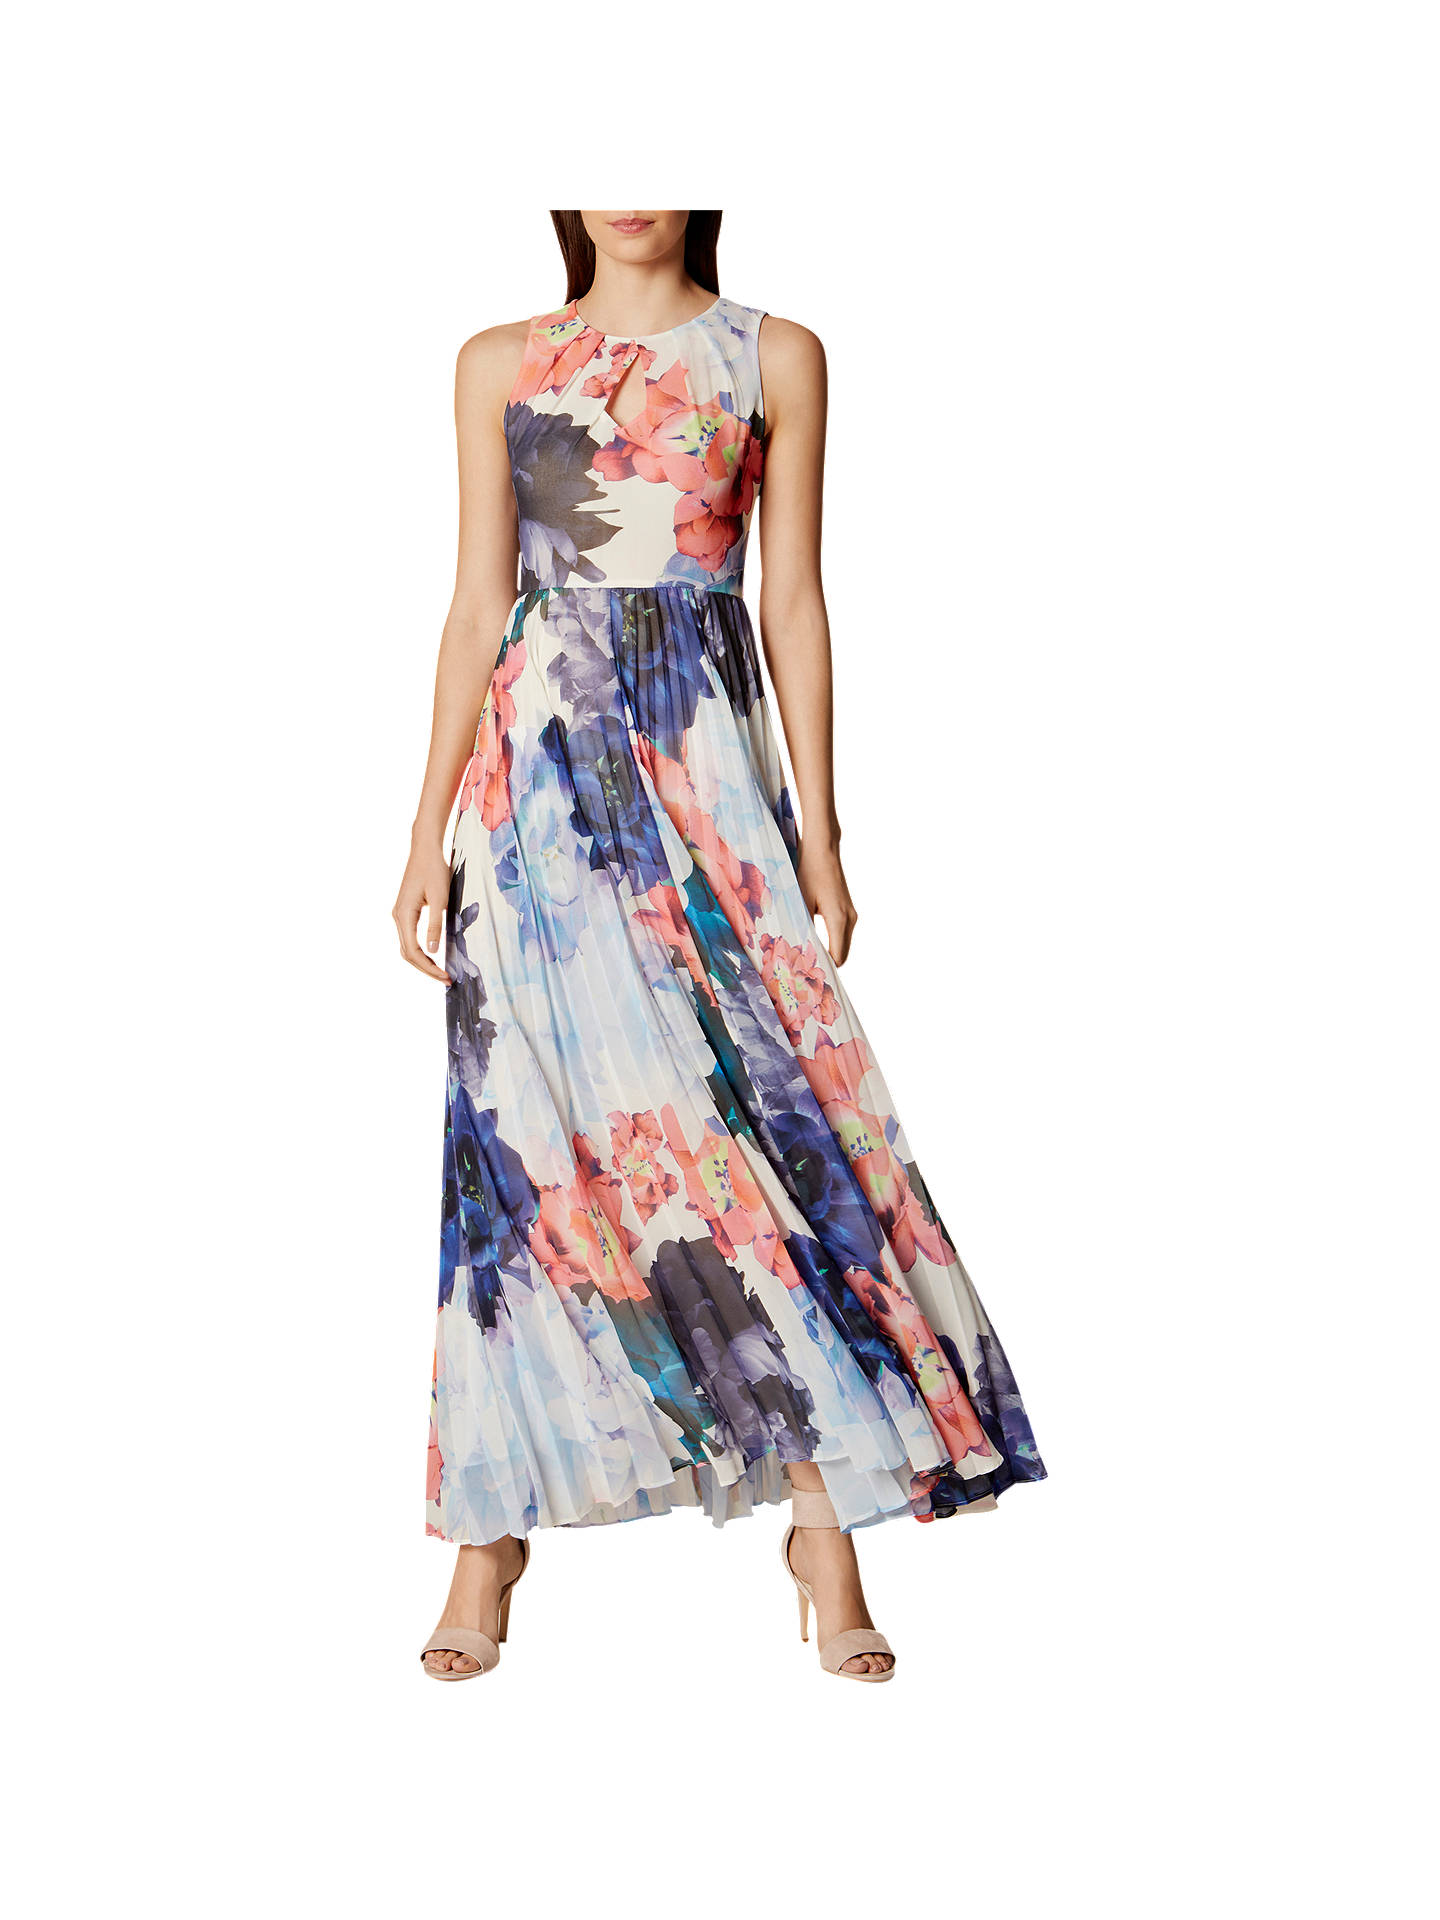 95b261d7d8 Buy Karen Millen Floral Pleated Maxi Dress, Multi, 6 Online at  johnlewis.com ...